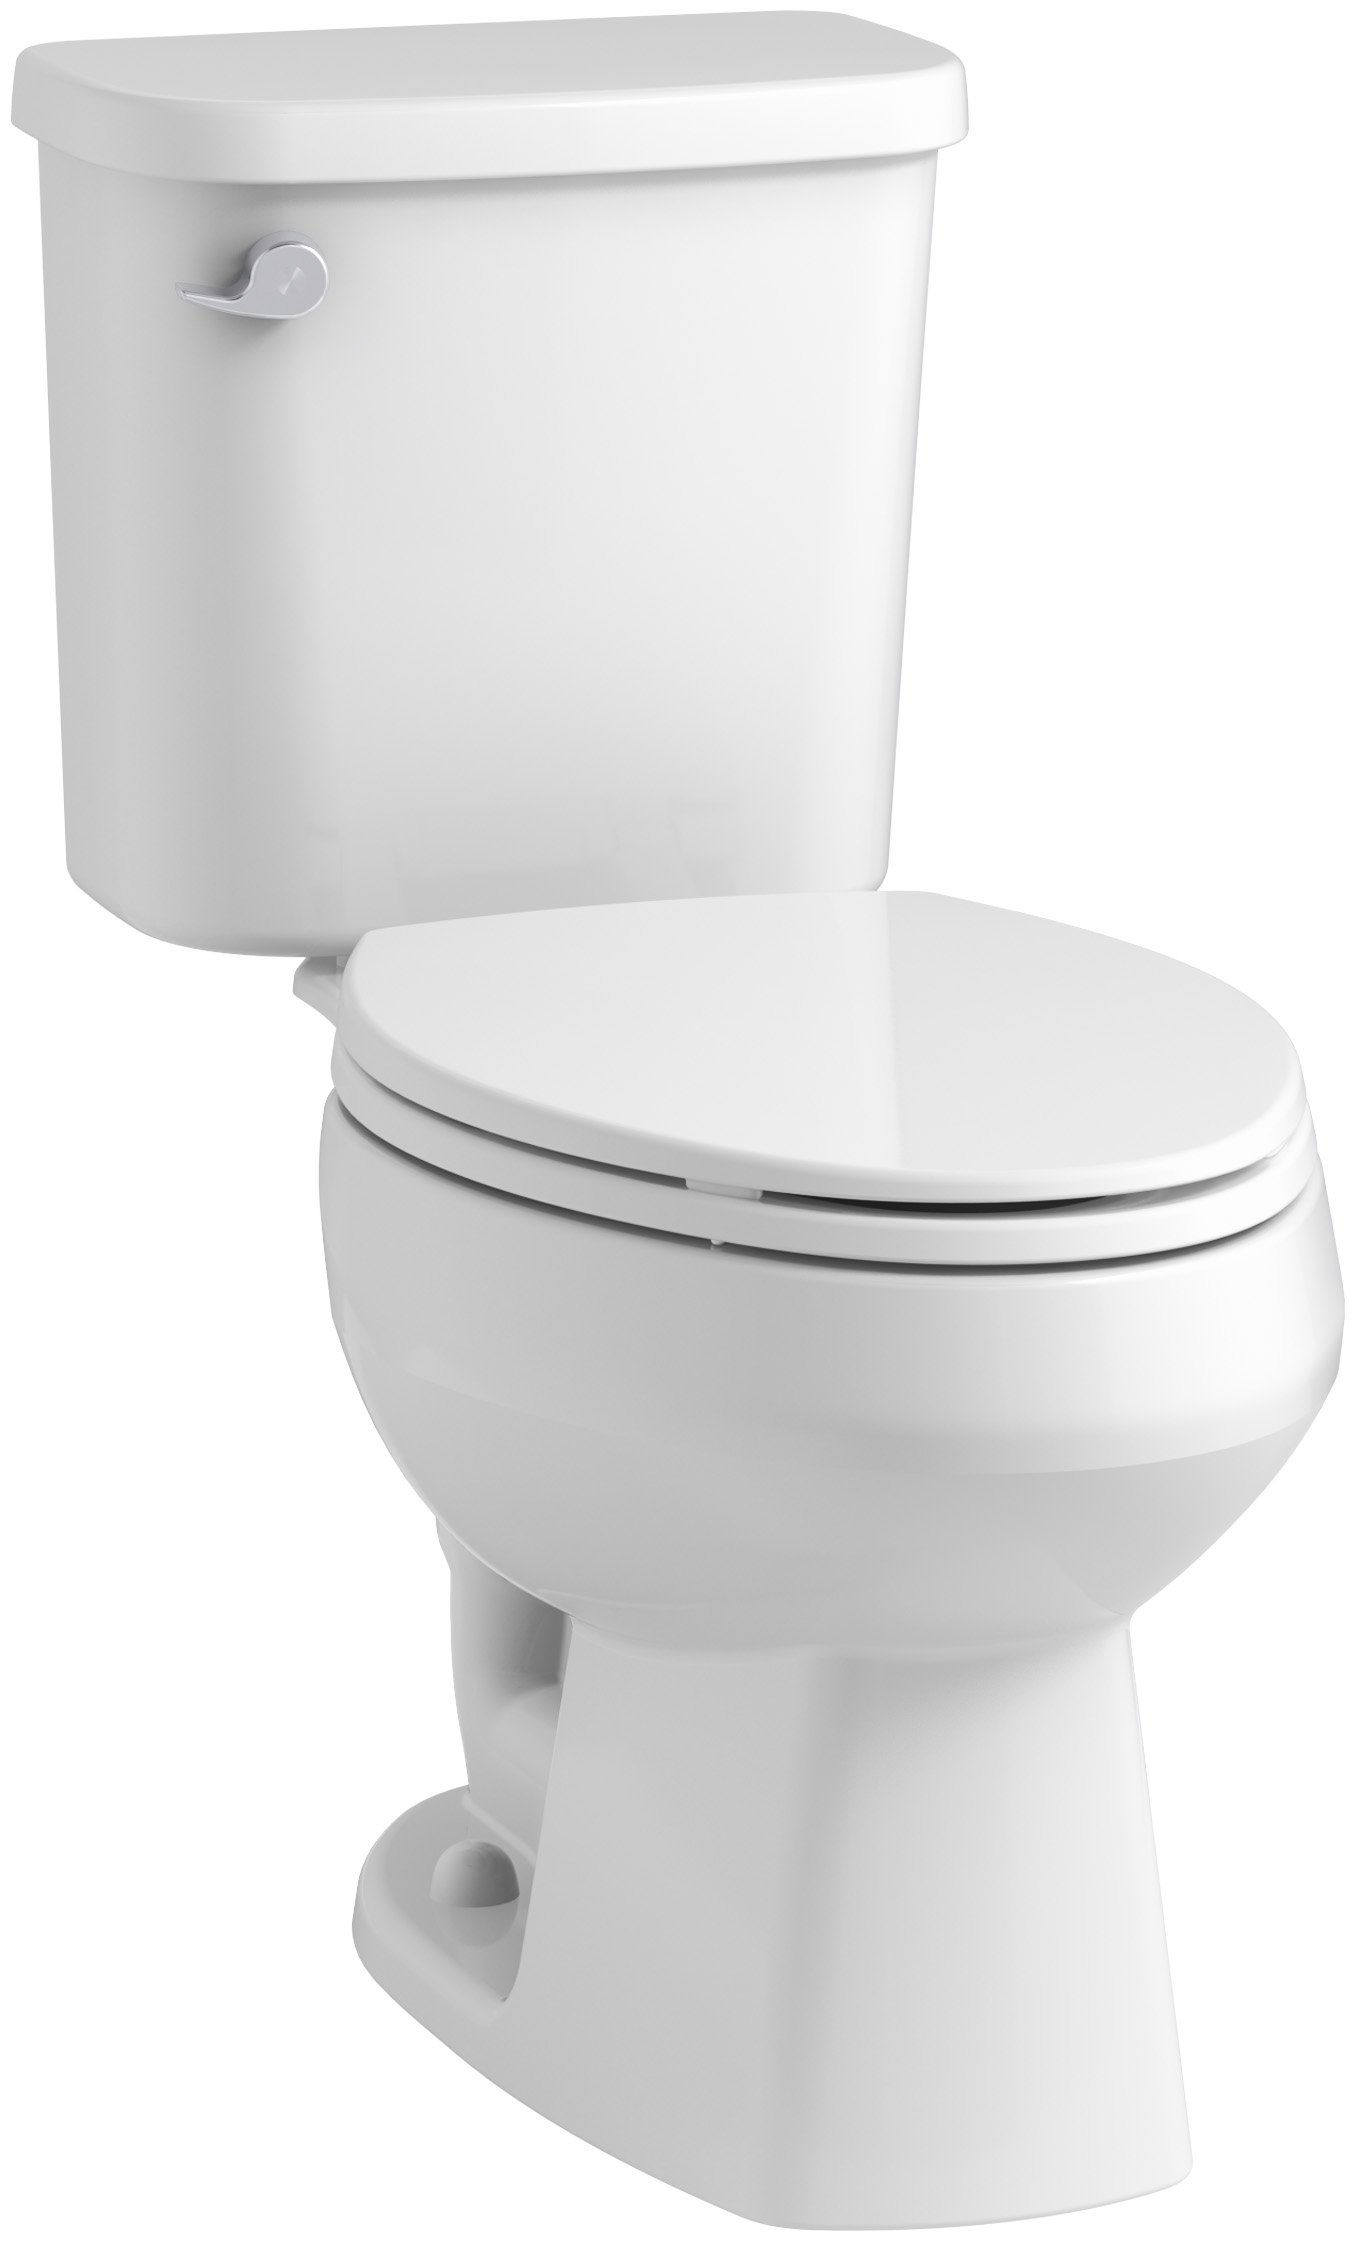 Cheap Windham Toilet, find Windham Toilet deals on line at Alibaba.com